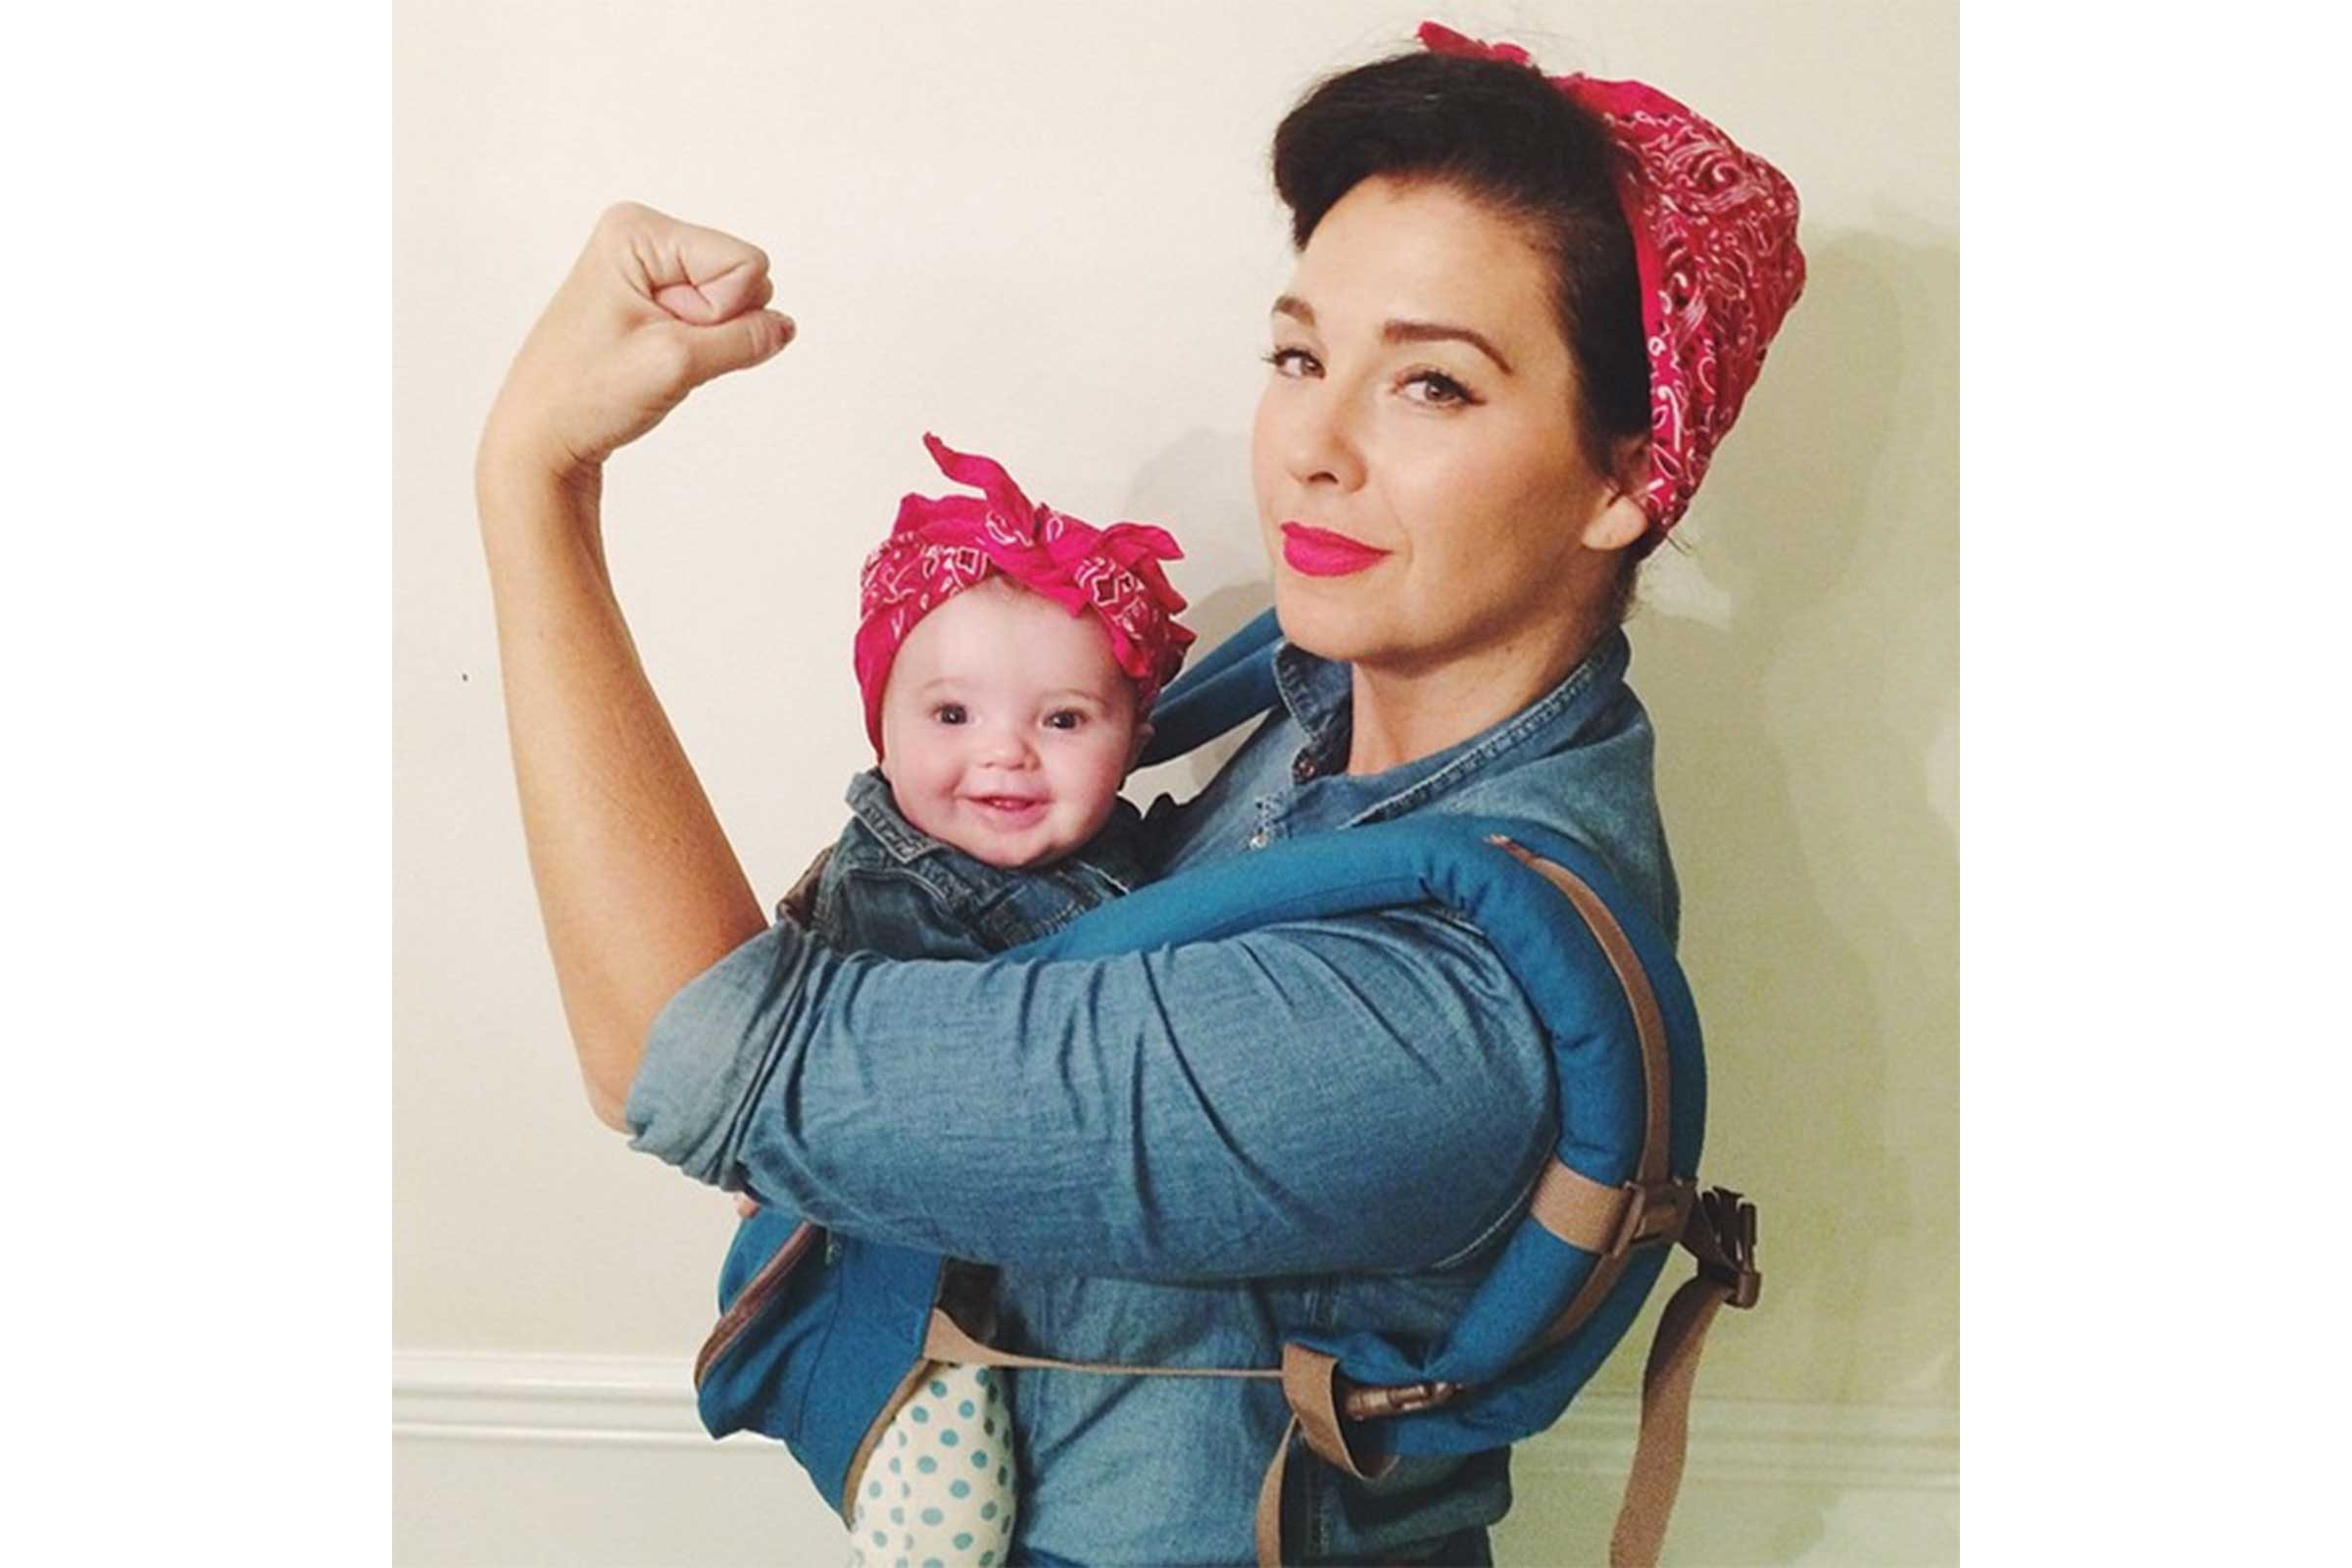 Rosie the Riveter  sc 1 st  Readeru0027s Digest & Mom and Baby Halloween Costumes | Readeru0027s Digest